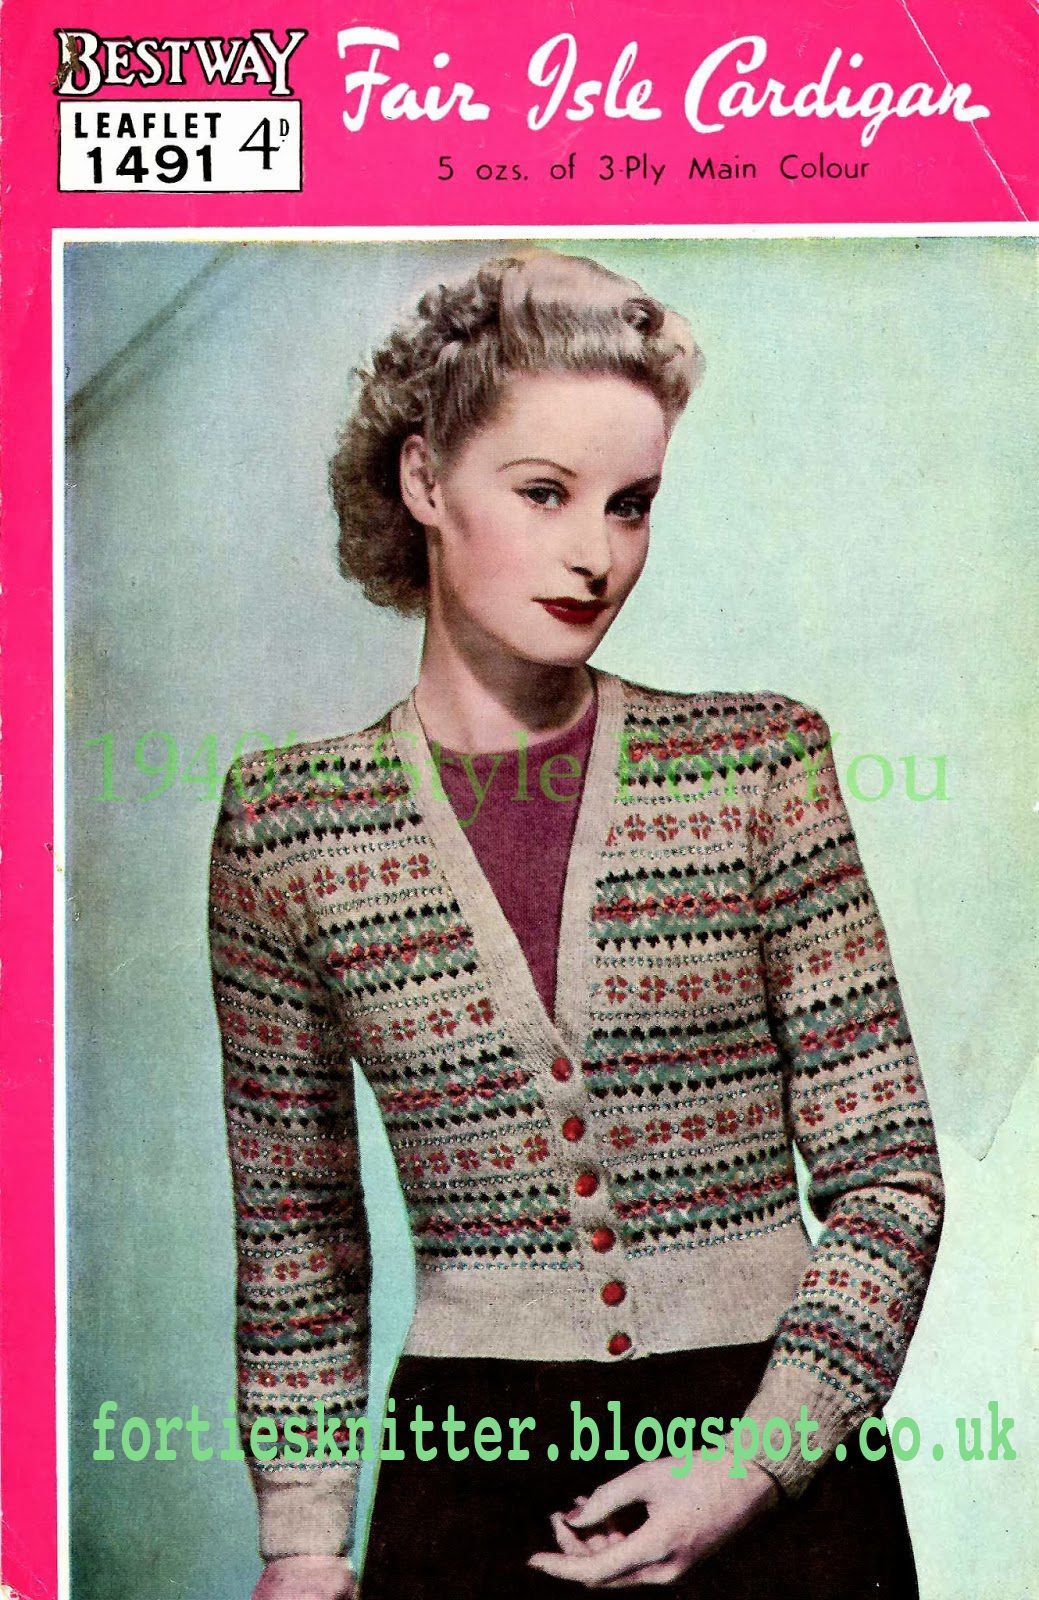 1940's Knitting - Bestway No.1491 Fair Isle Cardigan free knitting pattern